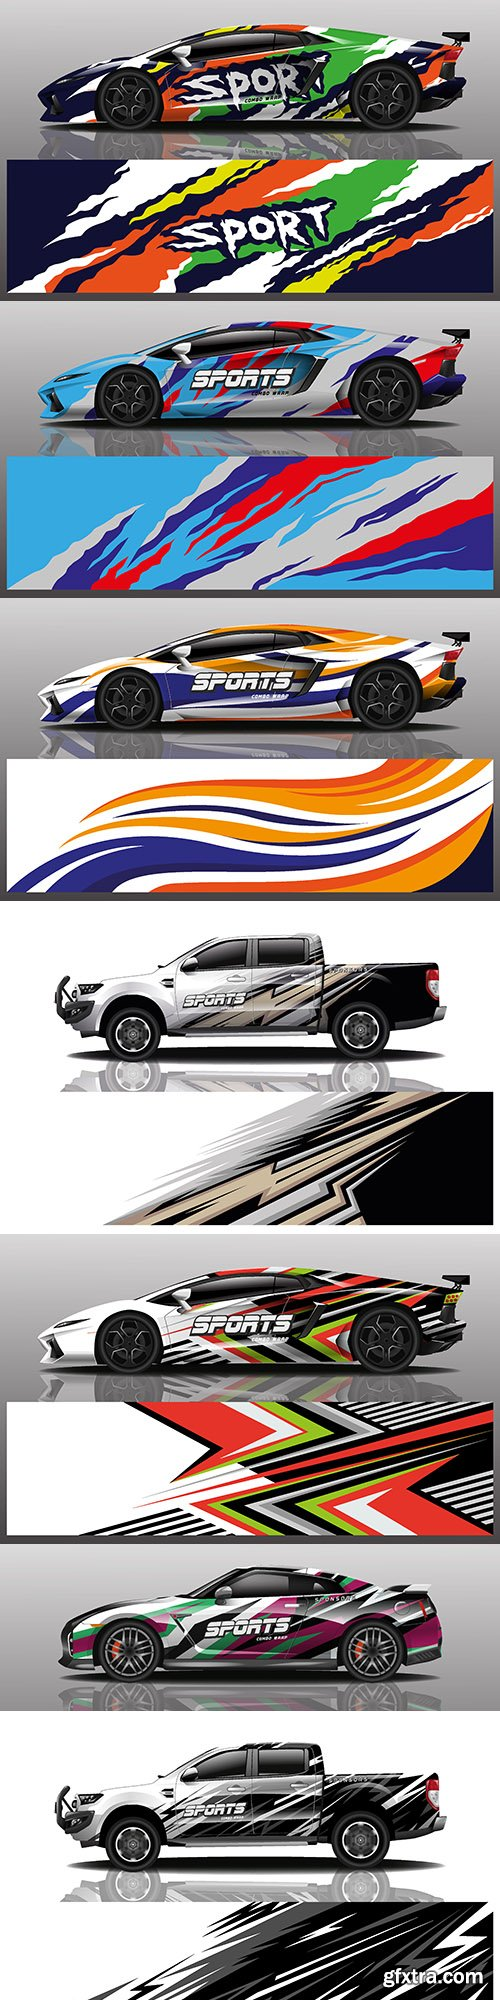 Truck and sports car colorful design sticker